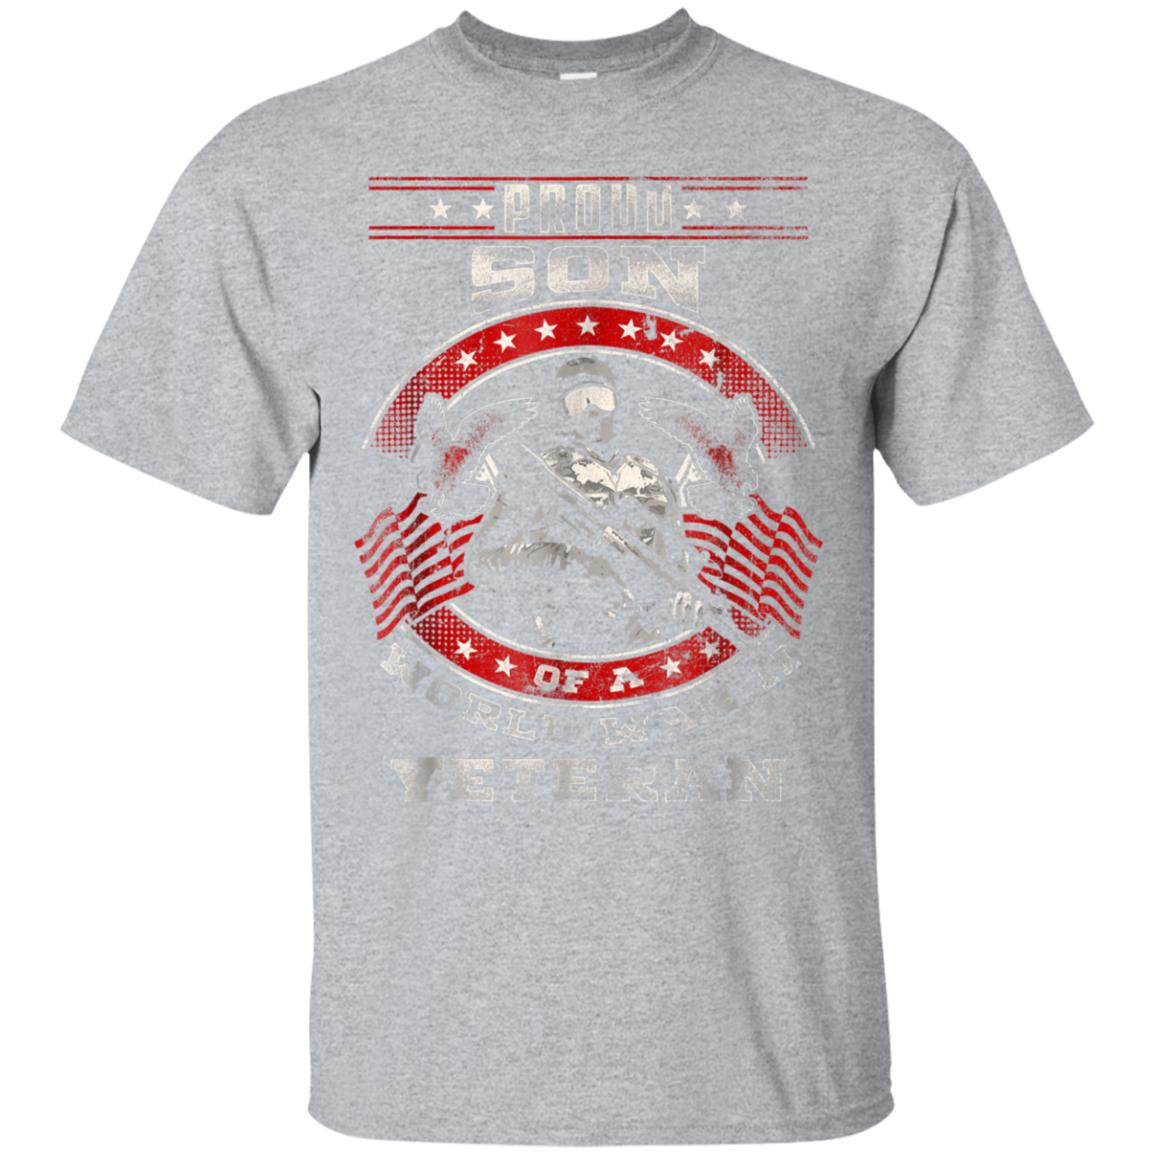 Proud Son Of A World War II Veteran Shirt Veteran's Day Gift 99promocode